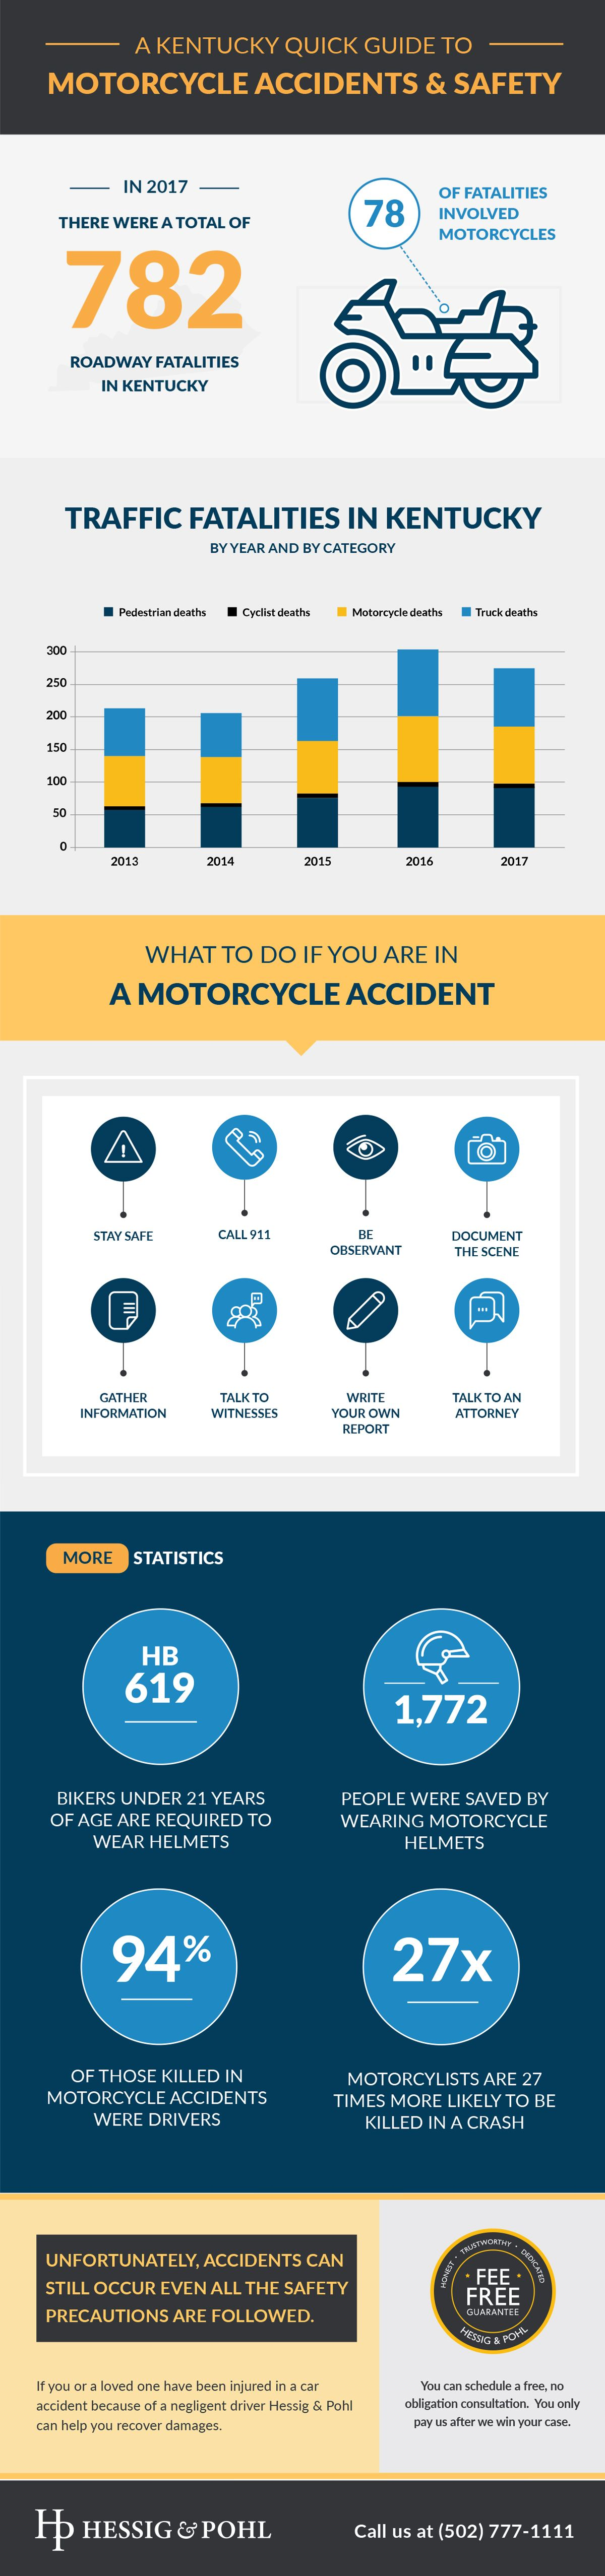 Louisville Motorcycle Accident Attorneys